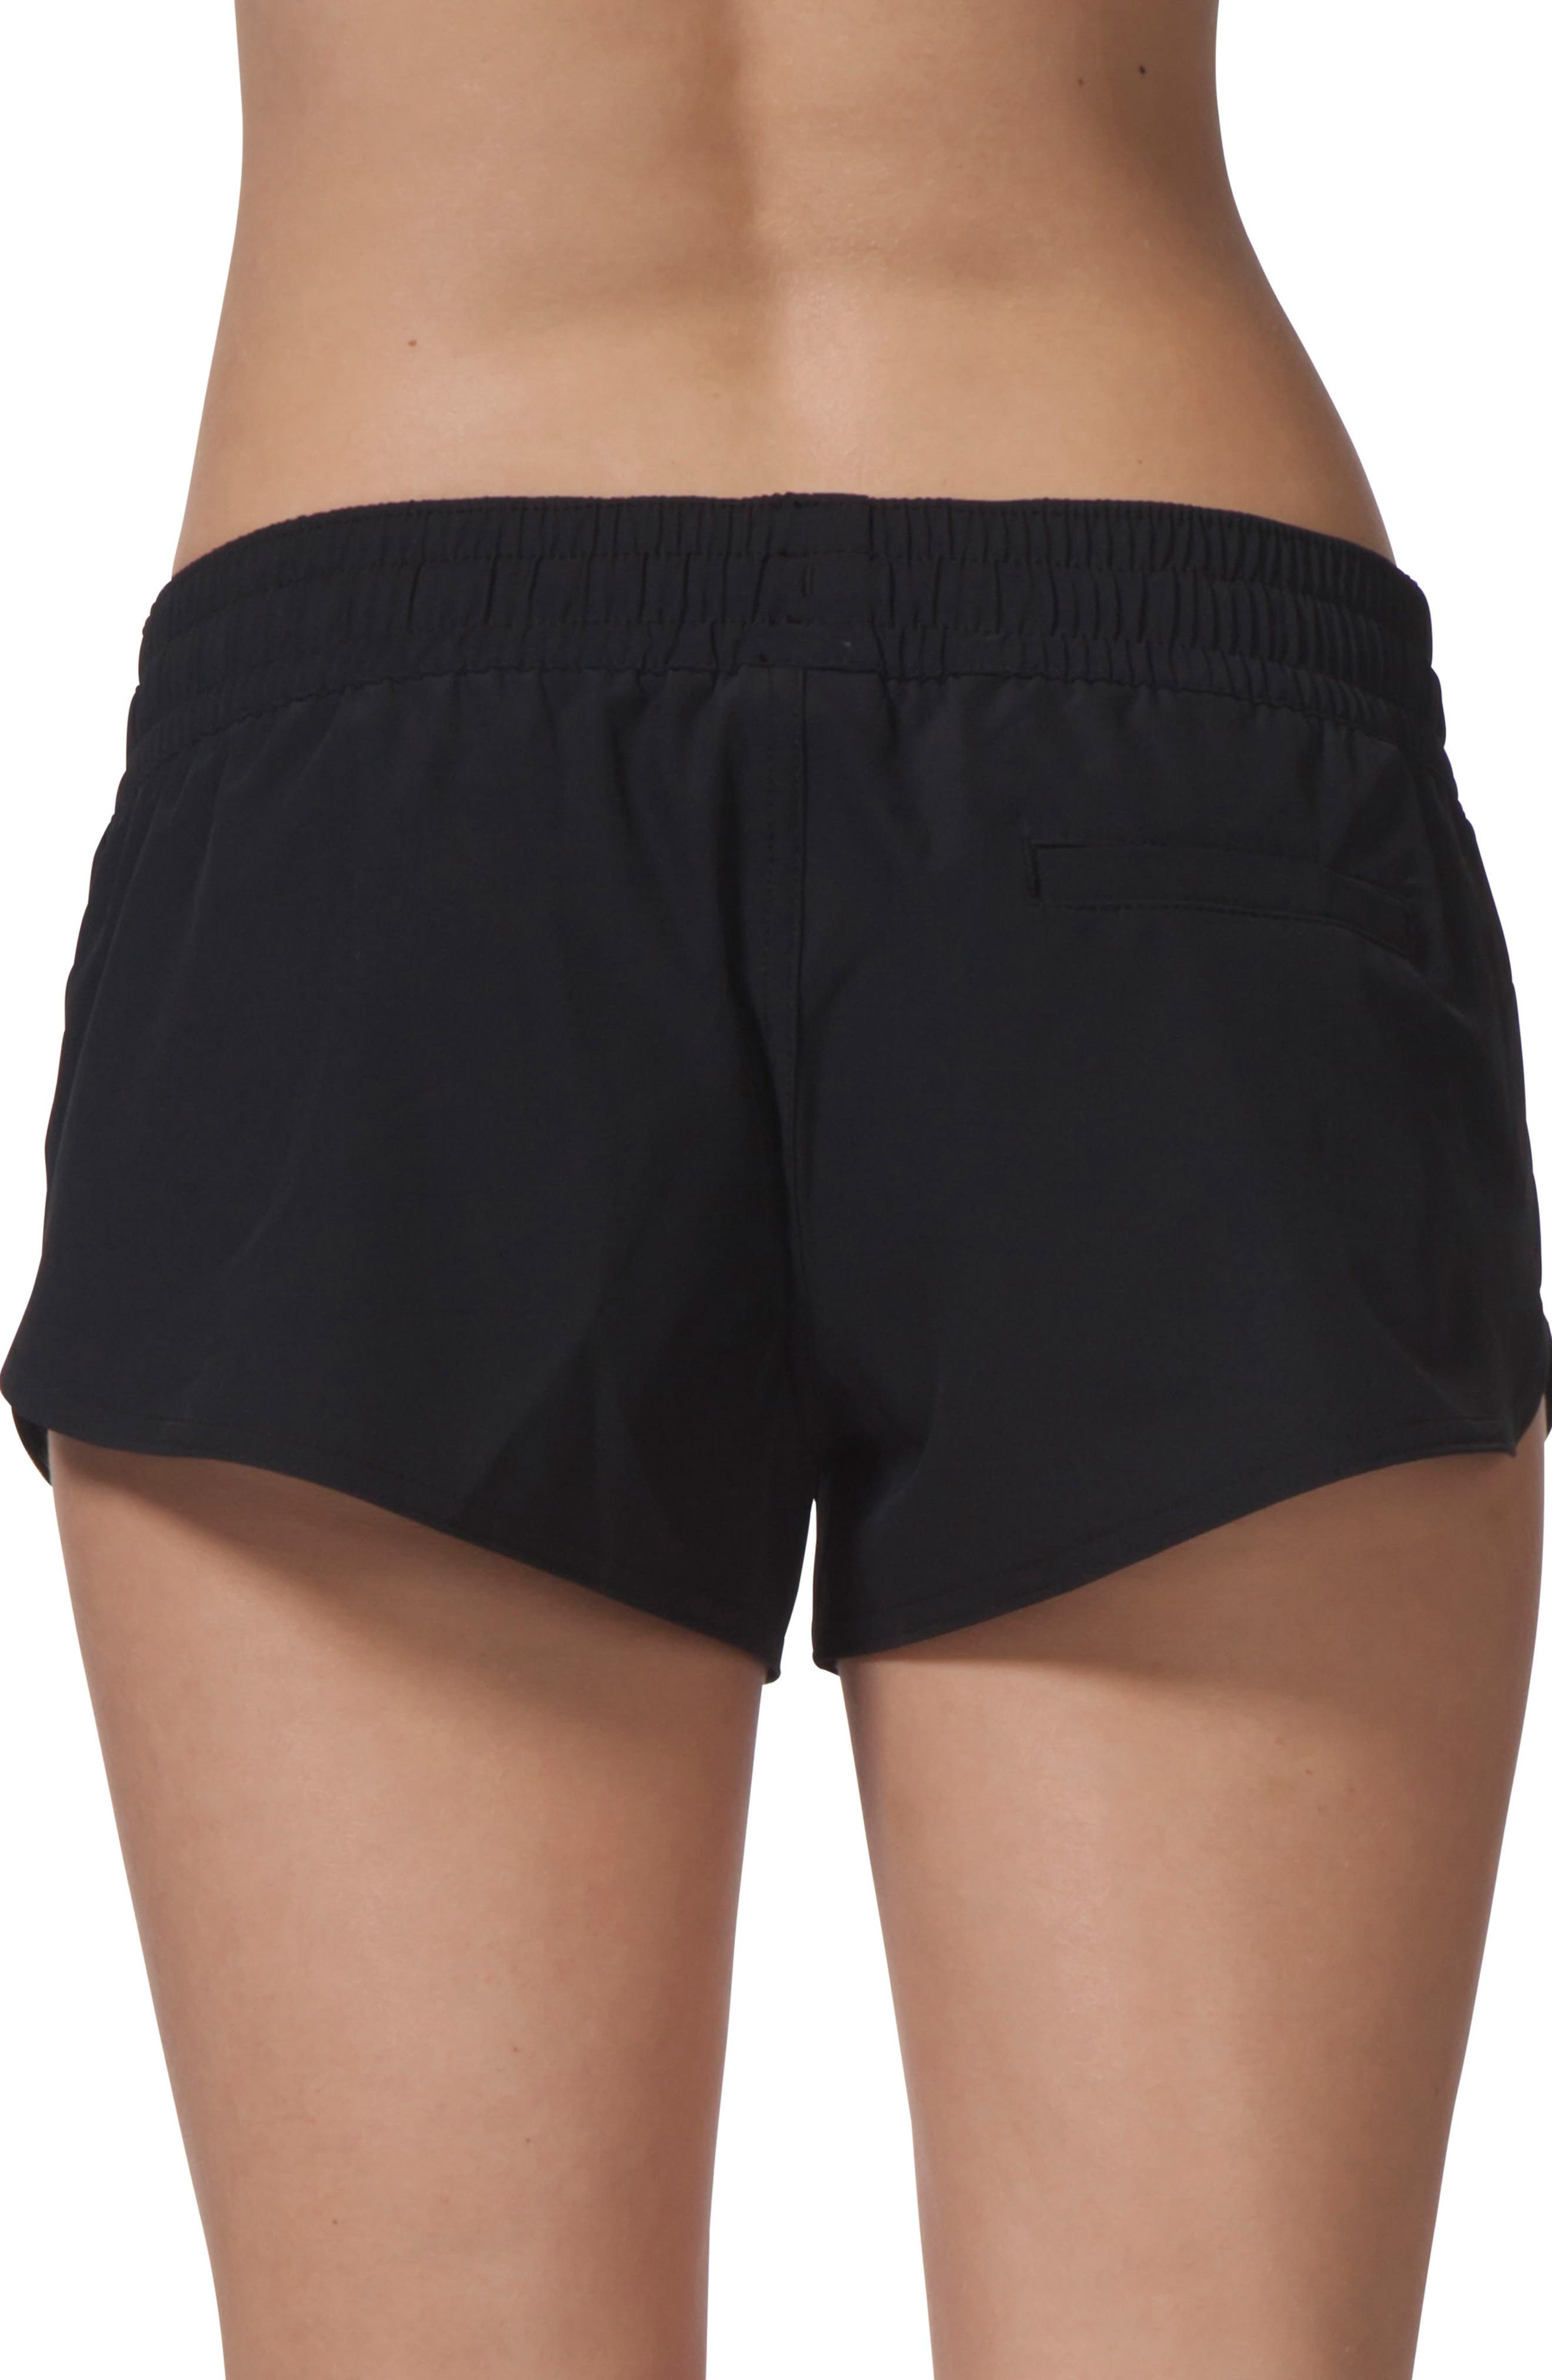 Alternate Image 2  - Rip Curl Classic Surf 2 Boardie Shorts